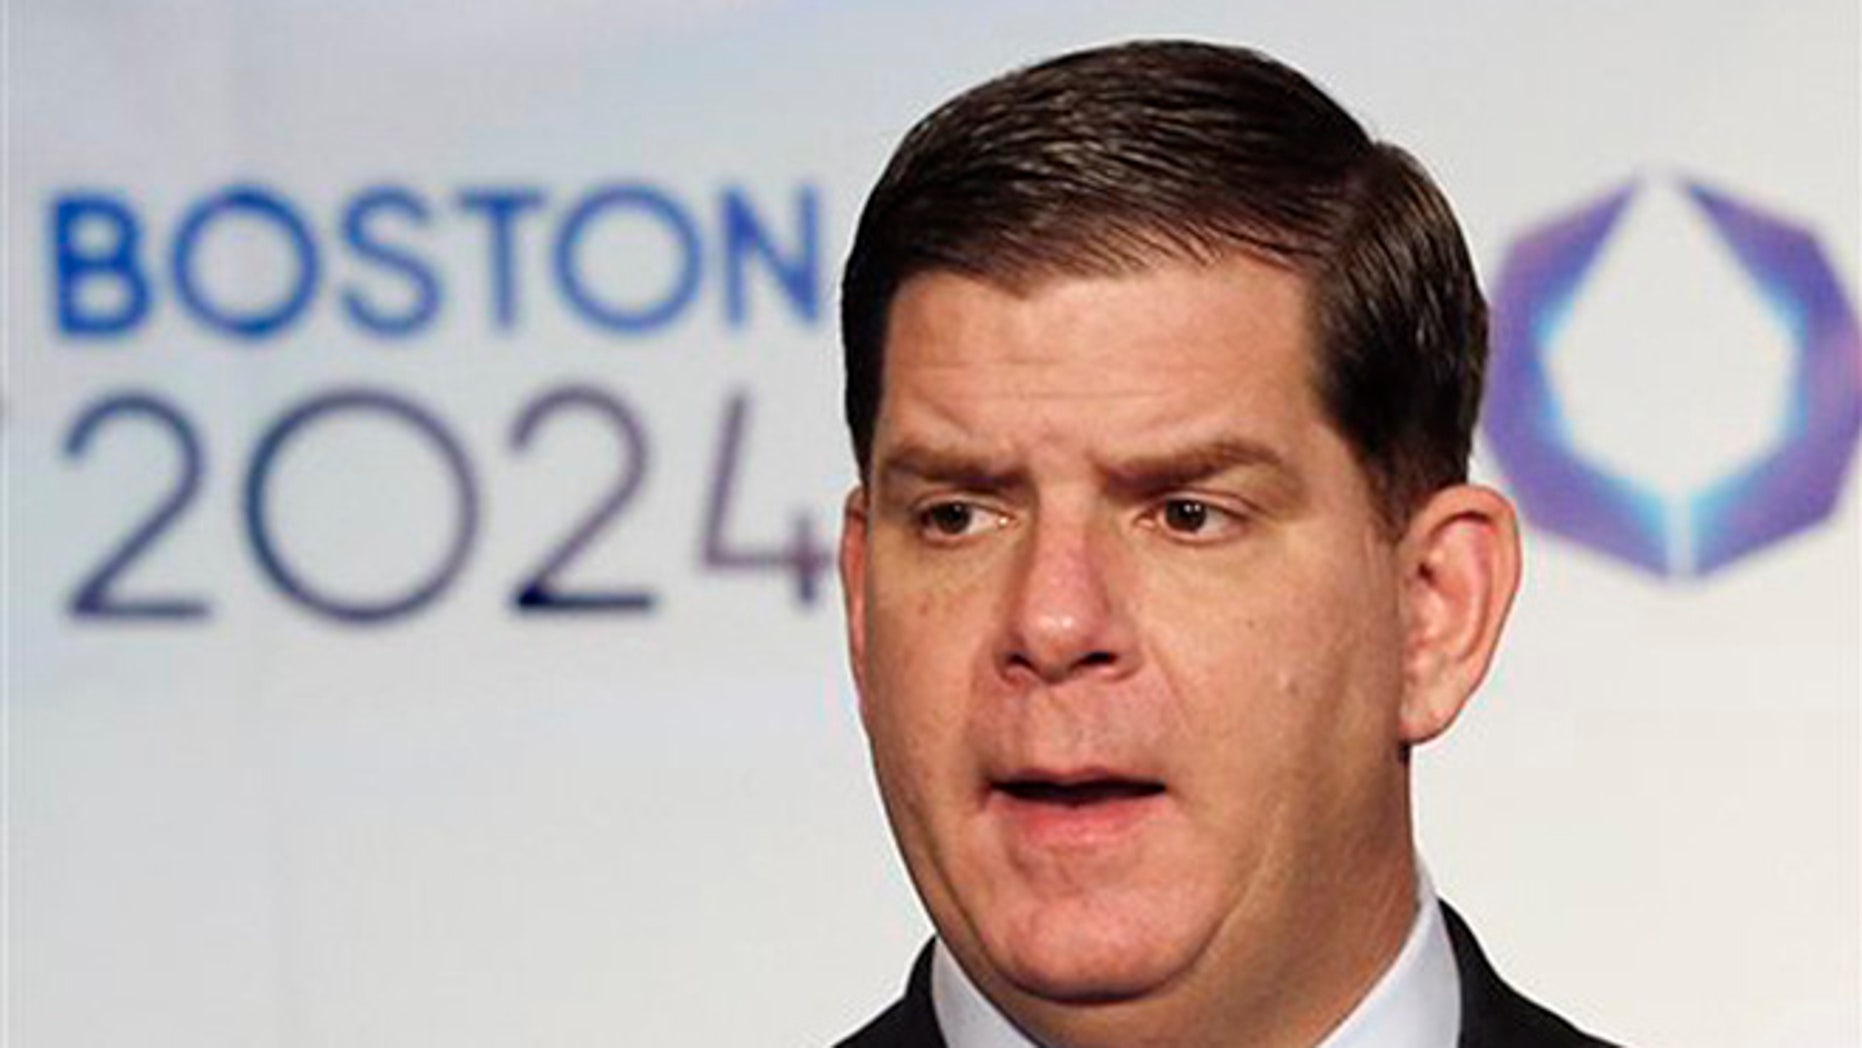 In this Jan. 9, 2015, file photo, Boston Mayor Martin Walsh speaks during a news conference in Boston after the city was picked by the USOC as its bid city for the 2024 Olympic Summer Games. (AP Photo/Winslow Townson, File)